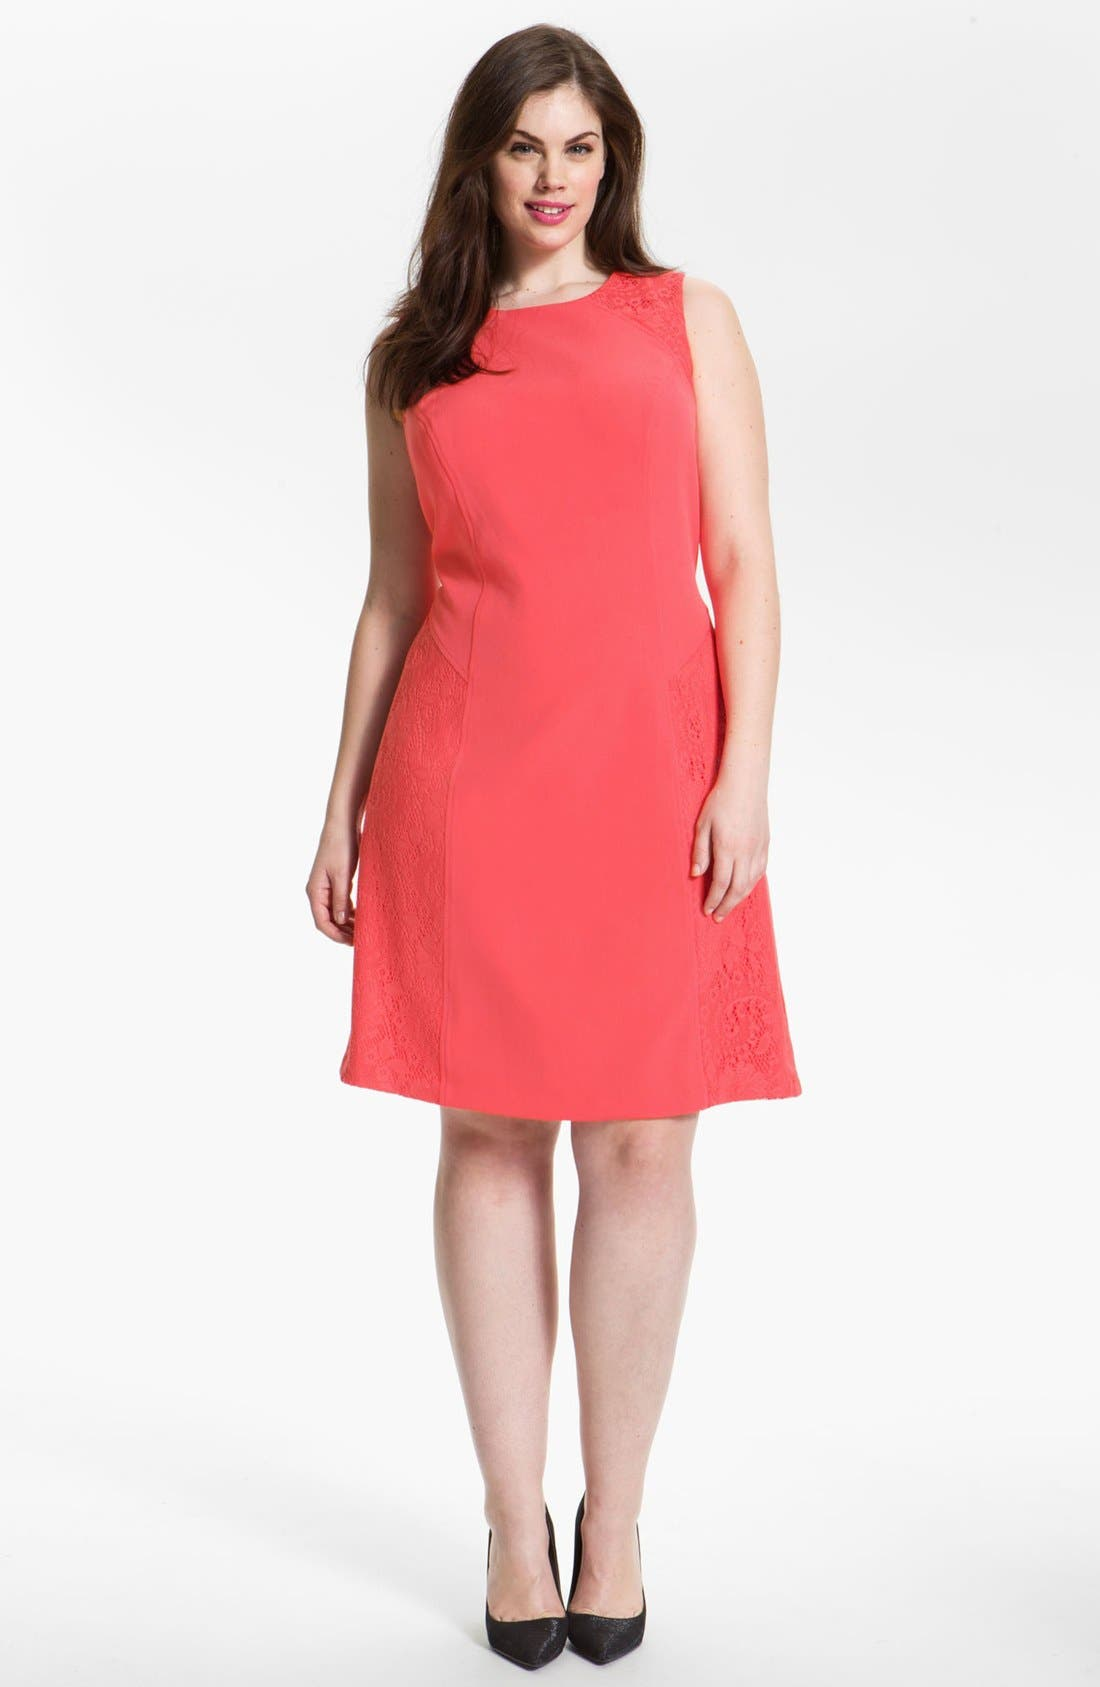 Alternate Image 1 Selected - Adrianna Papell Colorblock Lace & Crepe Dress (Plus Size)